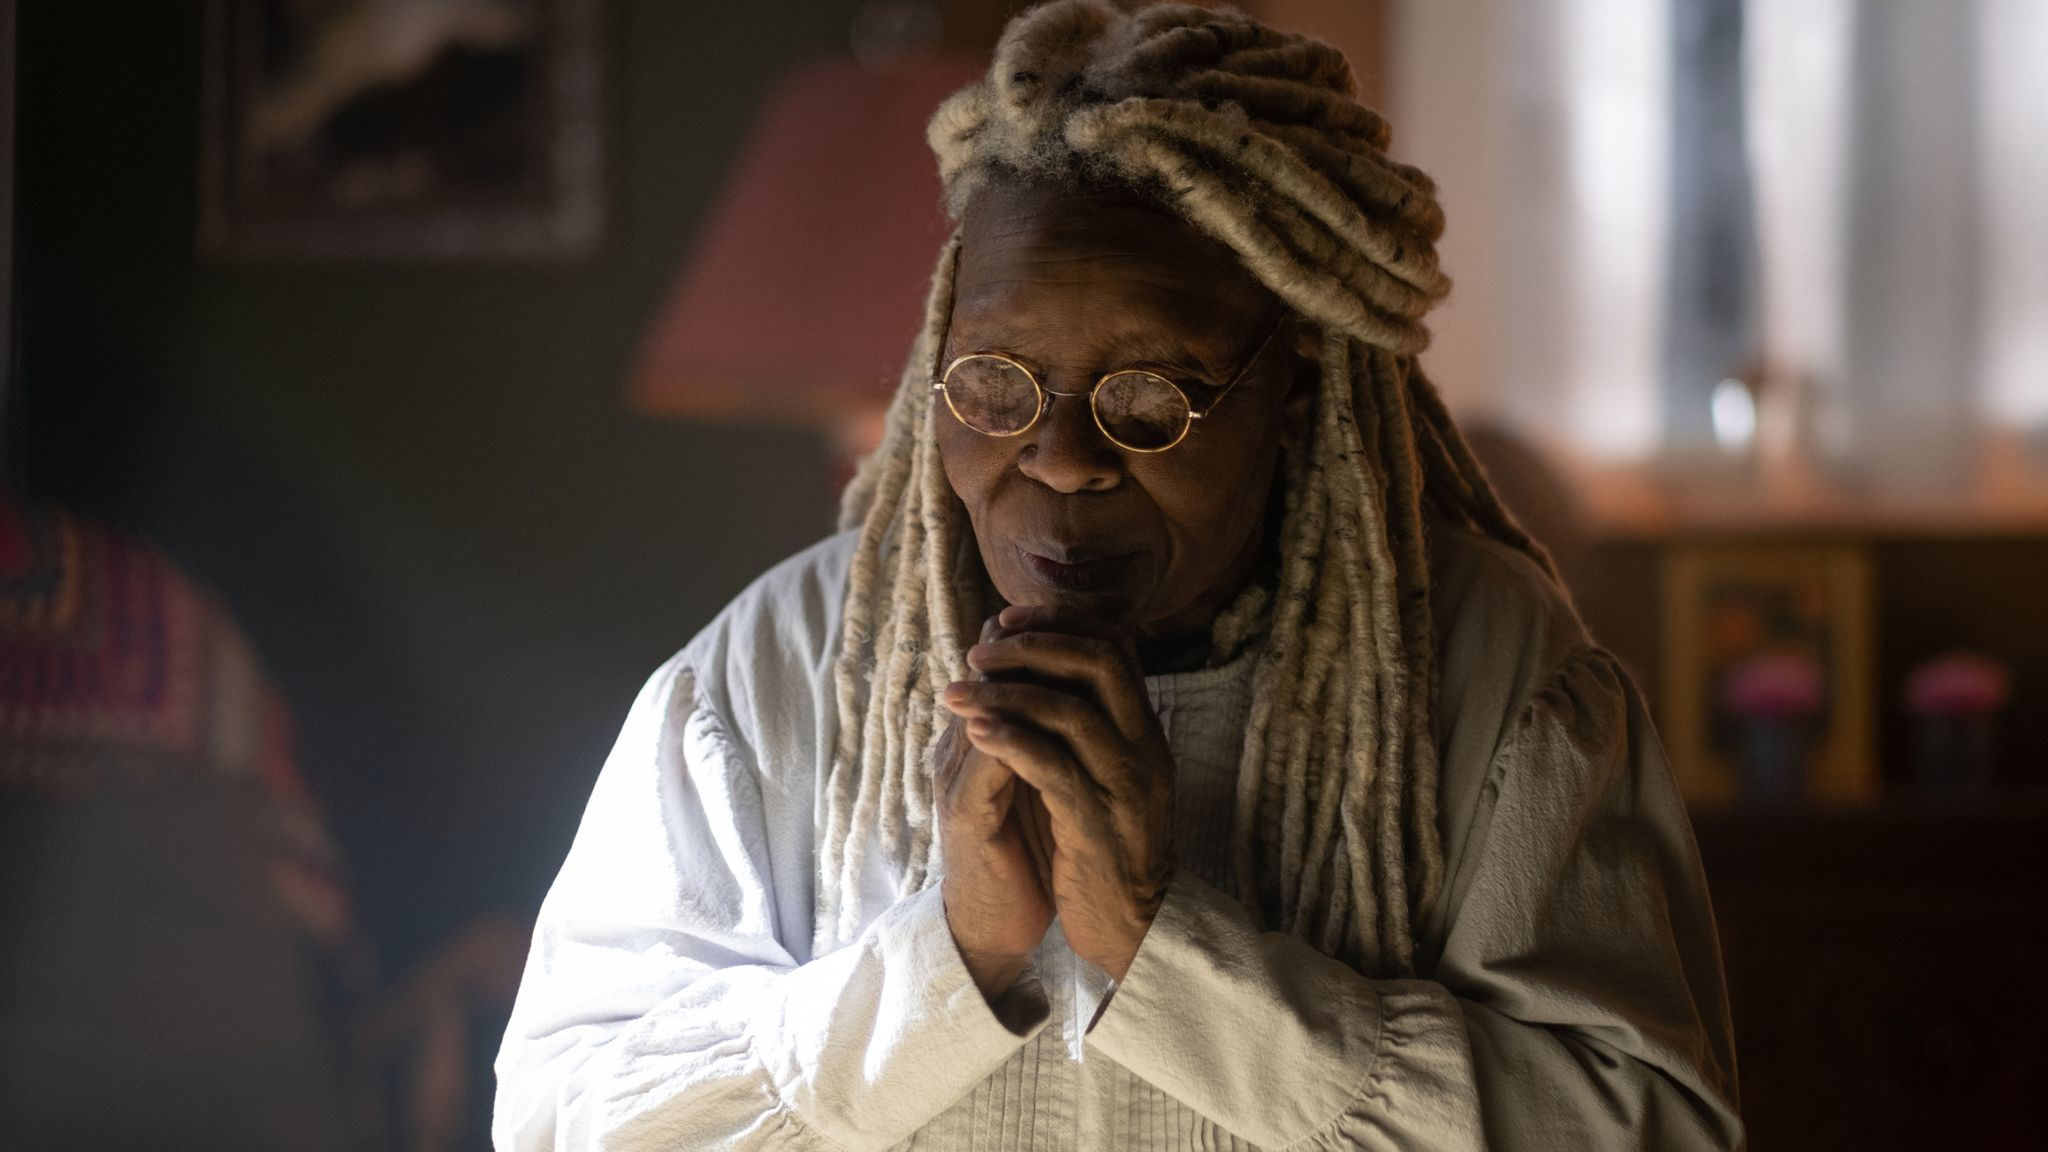 Whoopi Goldberg as Mother Abigail in The Stand. Pic: Robert Falconer/CBS